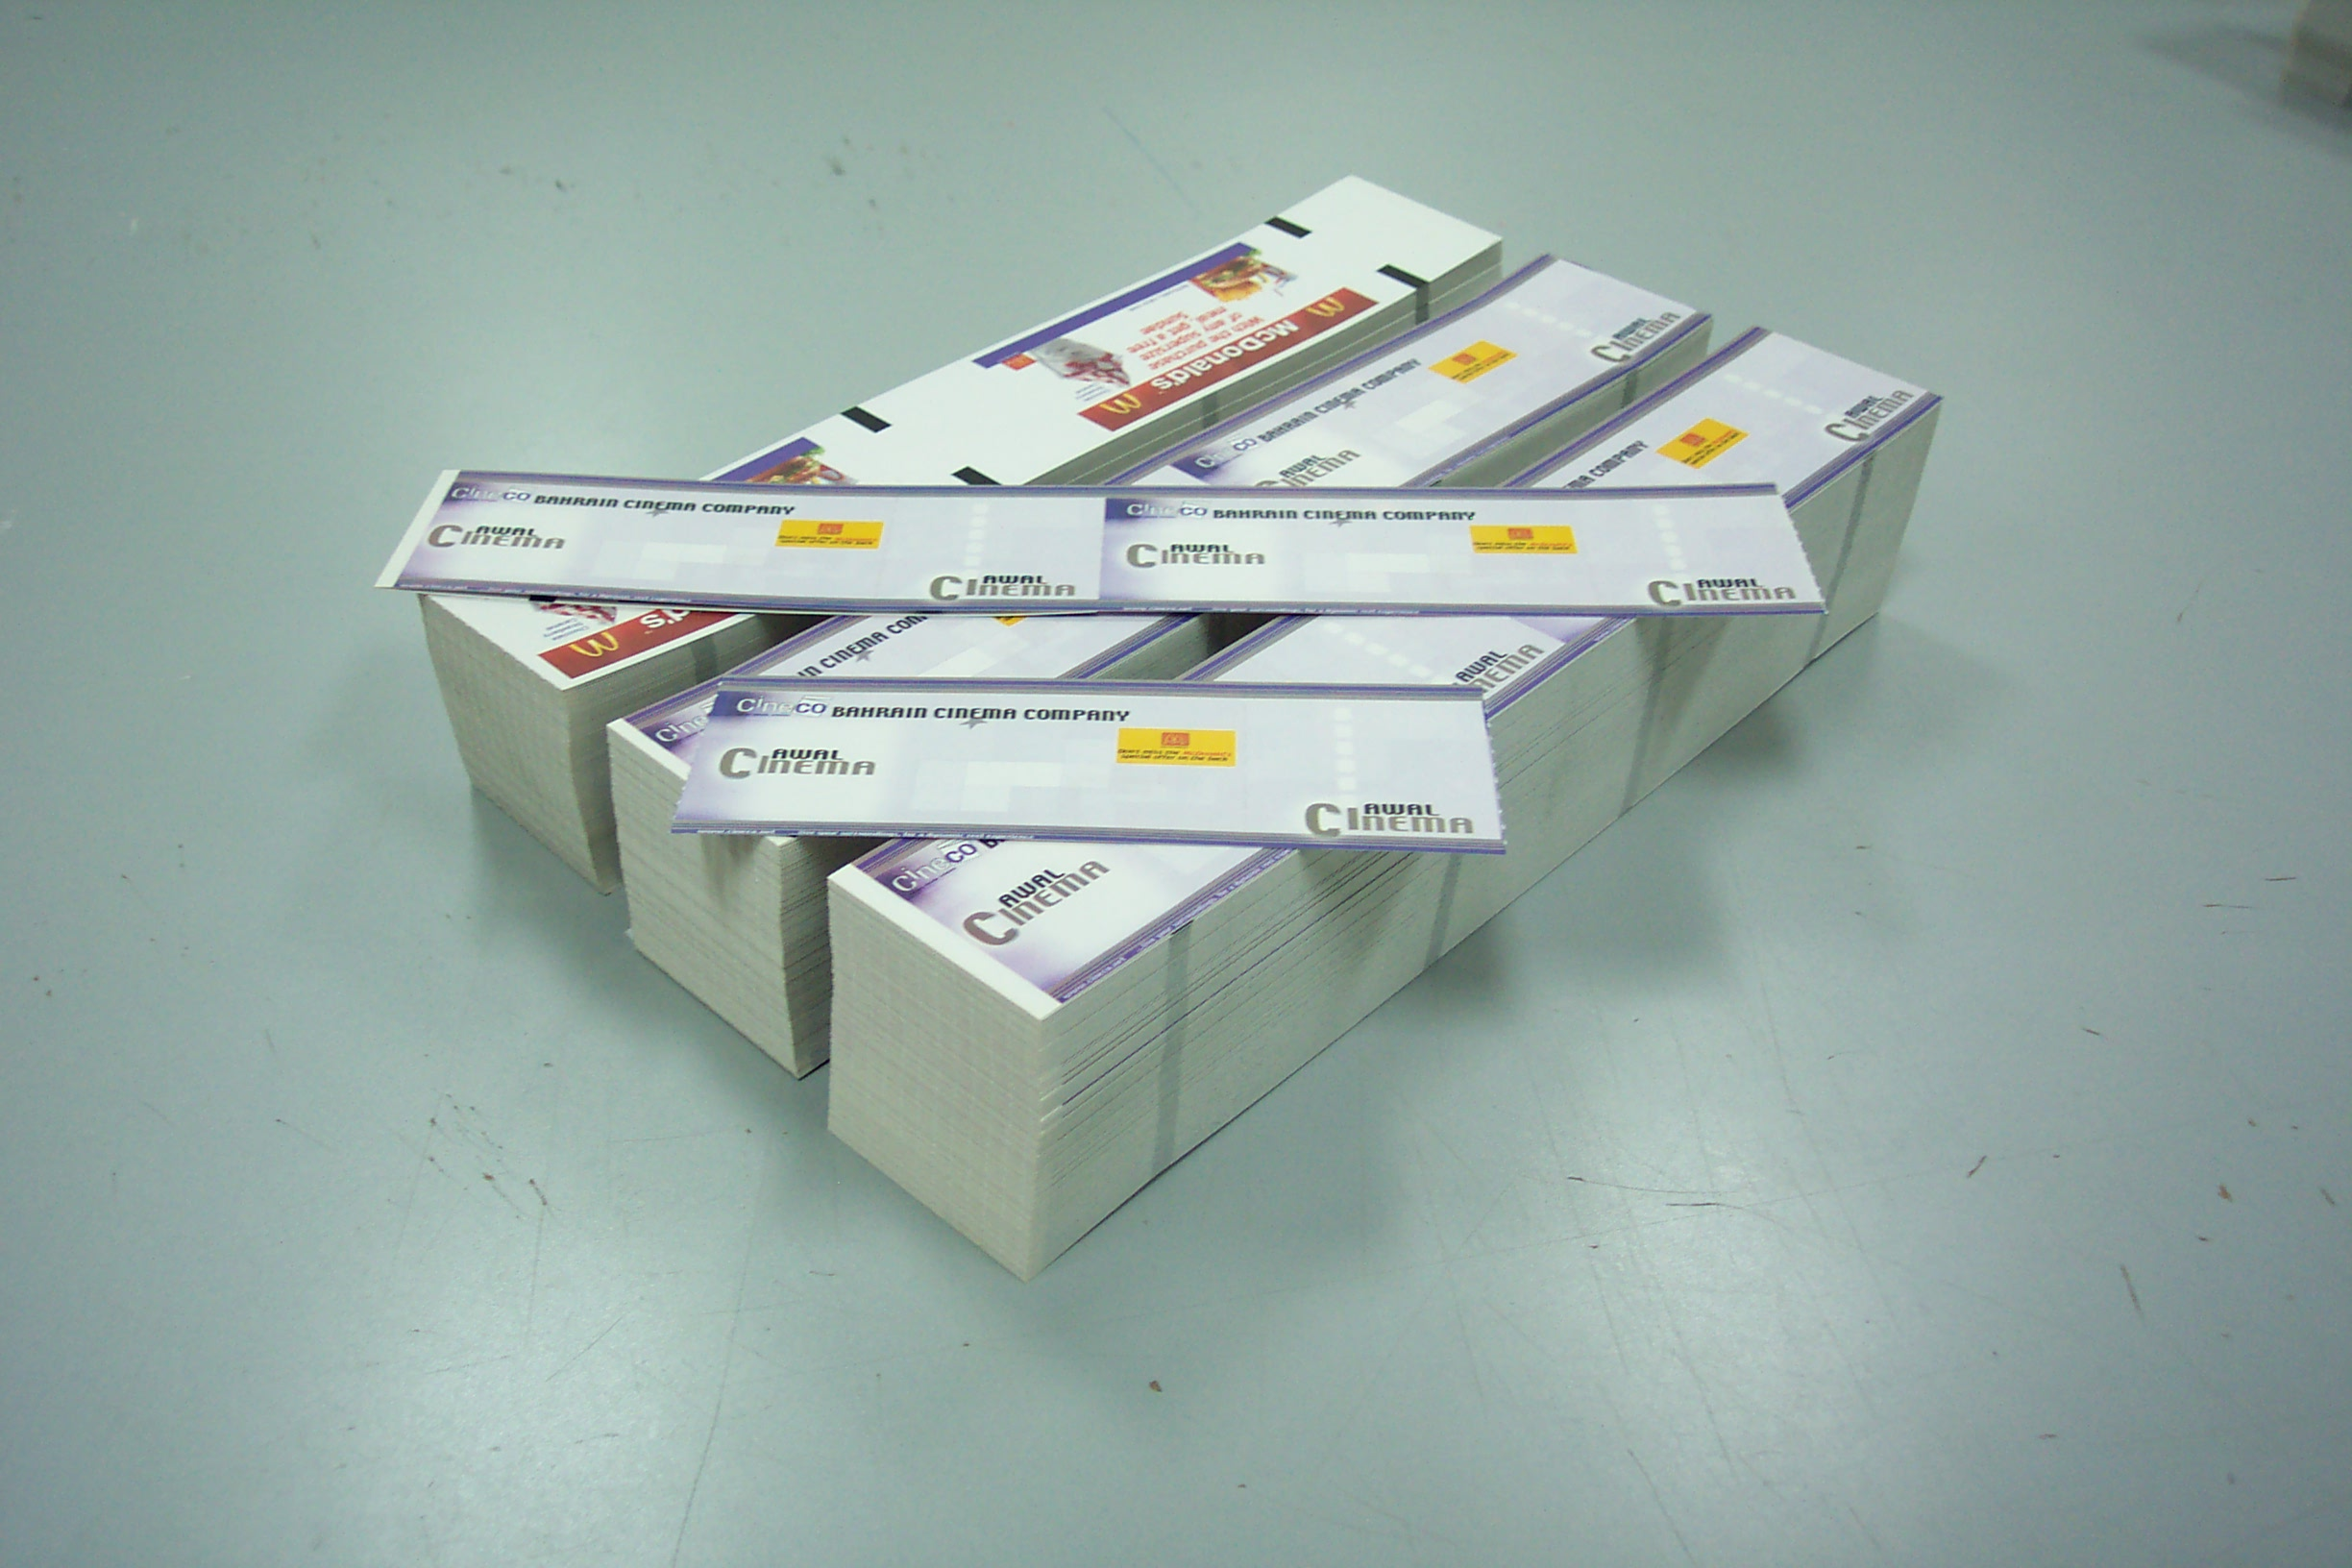 Abulhoul thermal printing tickets